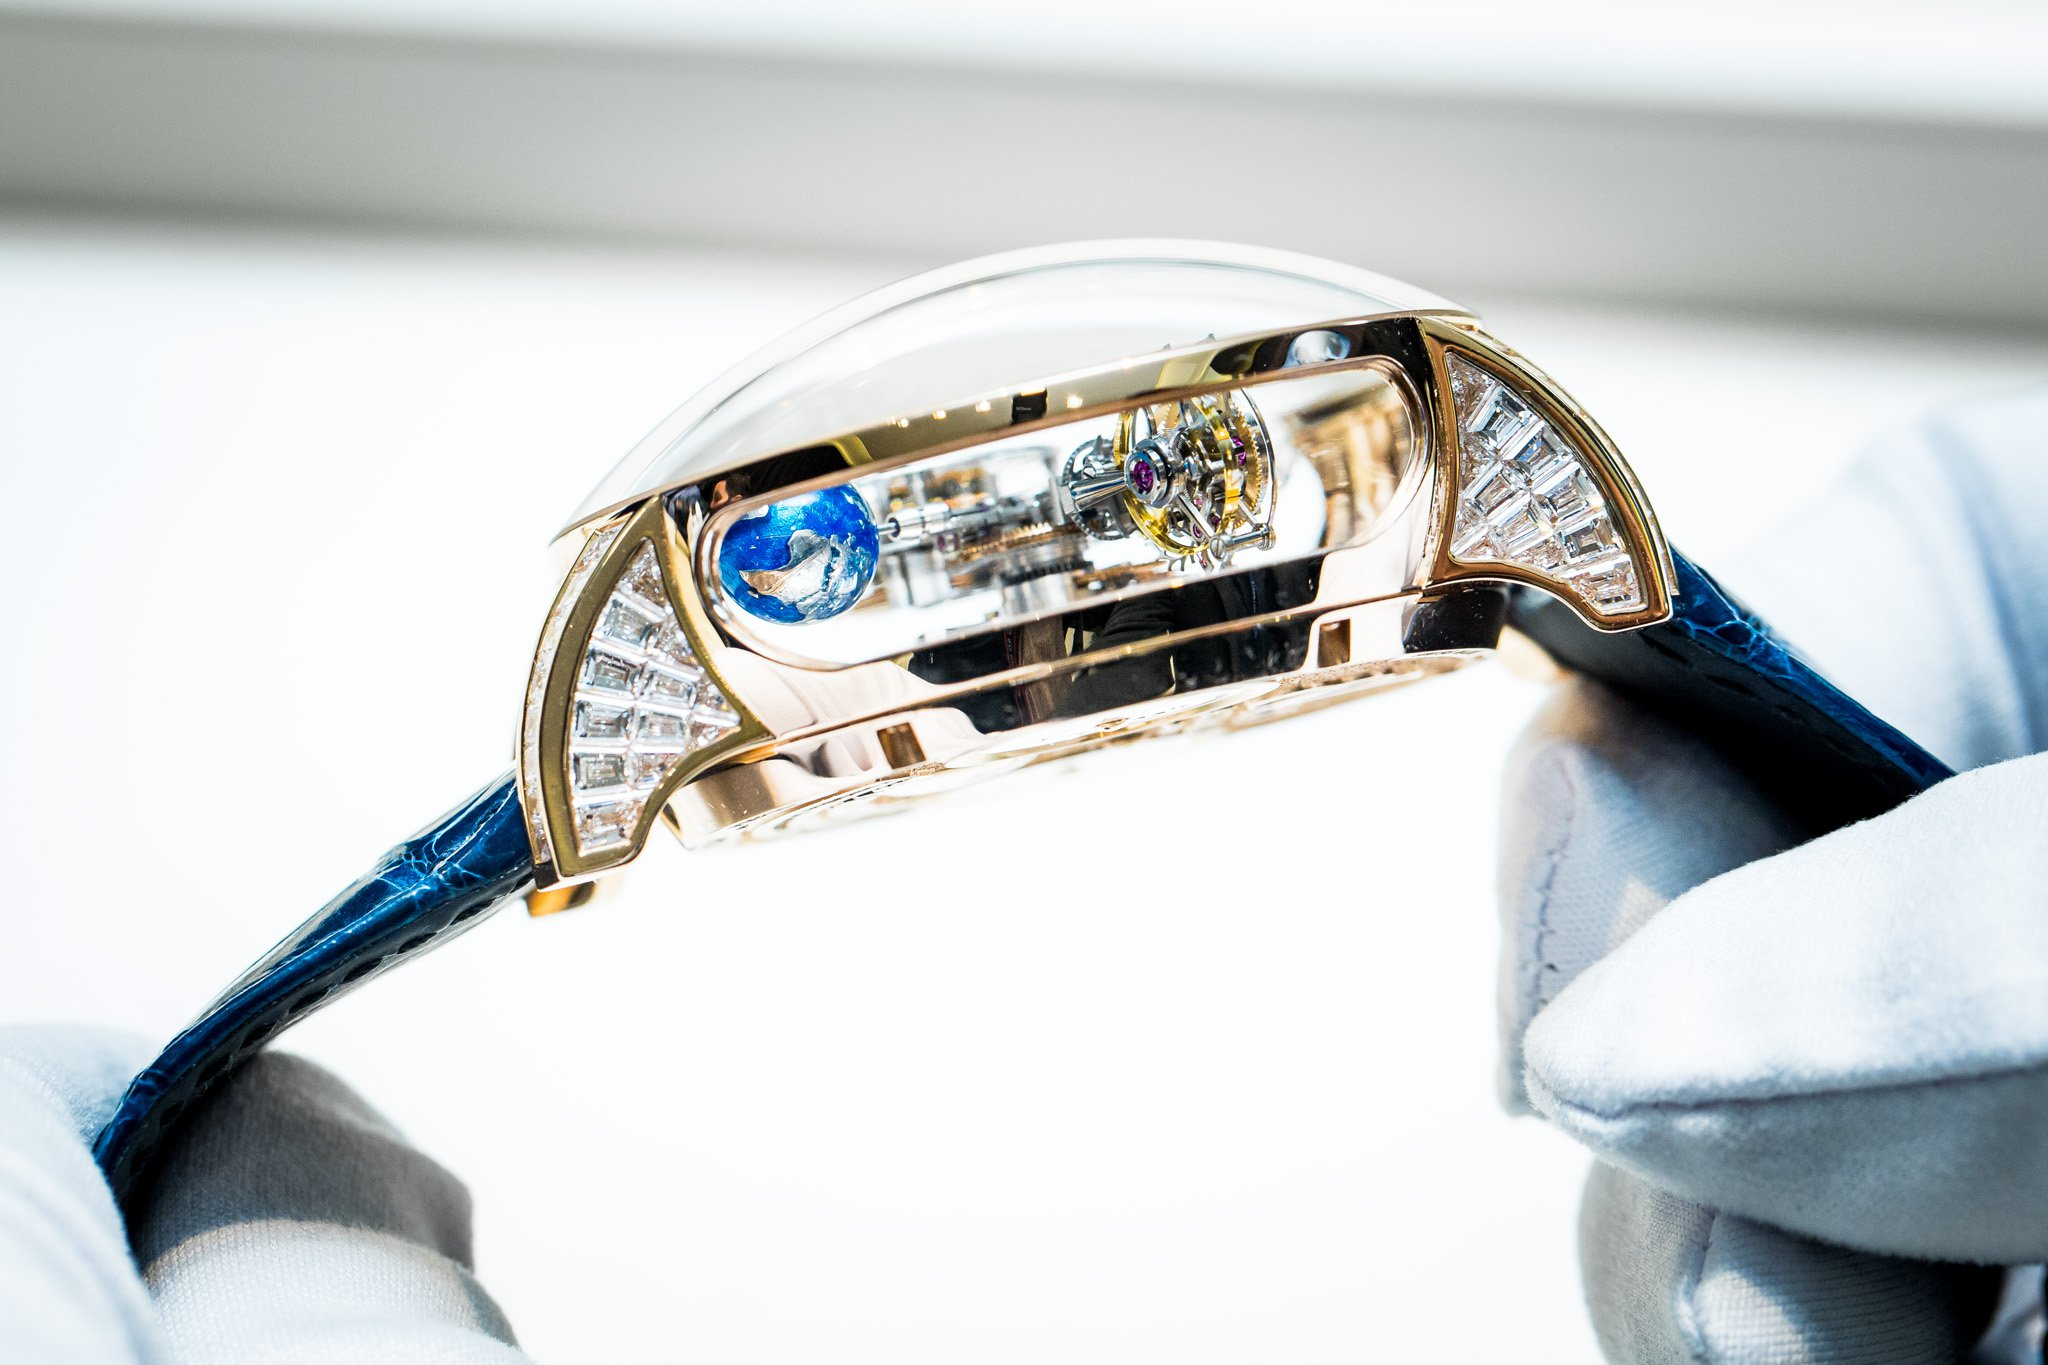 Jacob-Co-Astronomia-Tourbillon-Baguette-Watch-Baselworld-2015-See-Through